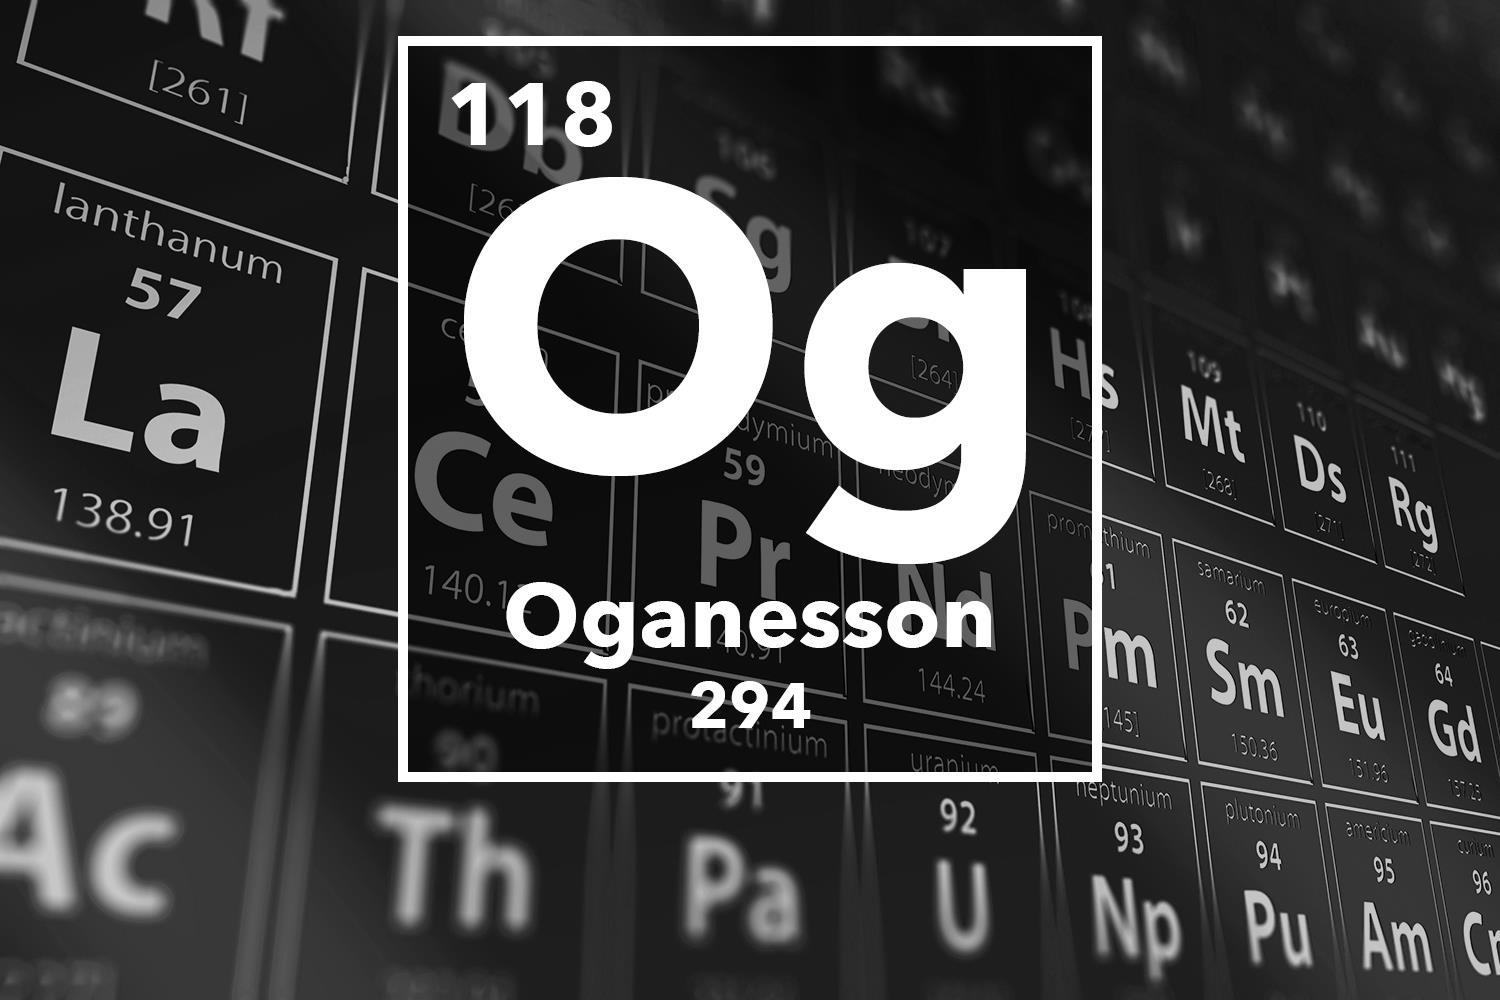 How the World Works From Hydrogen to Oganesson The Periodic Table